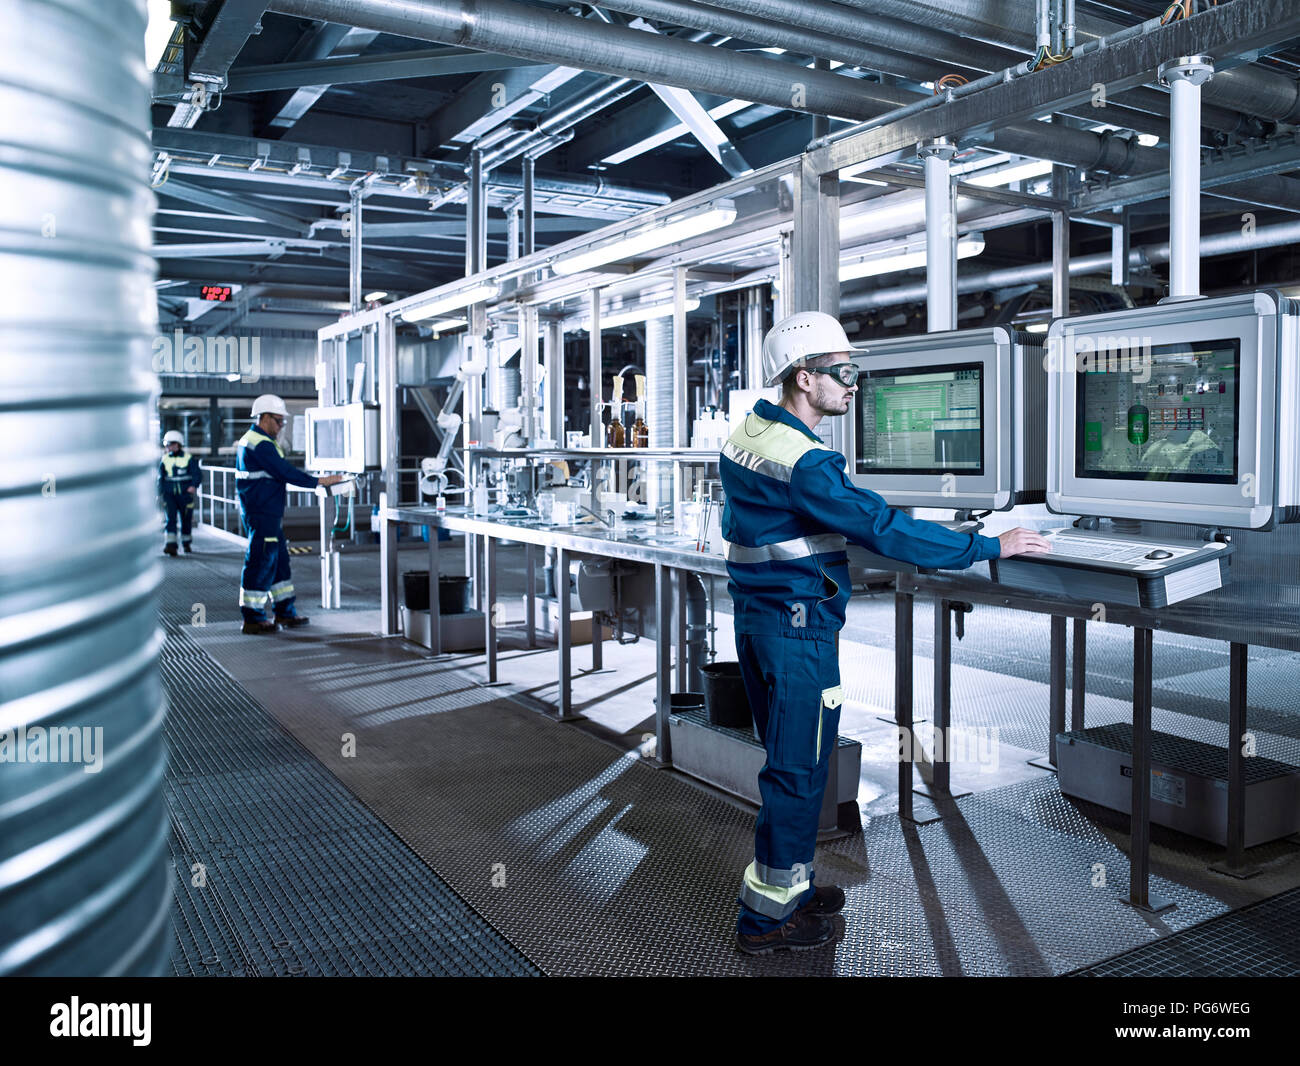 Rumania, woodworking, veneer production, worker in productions hall - Stock Image